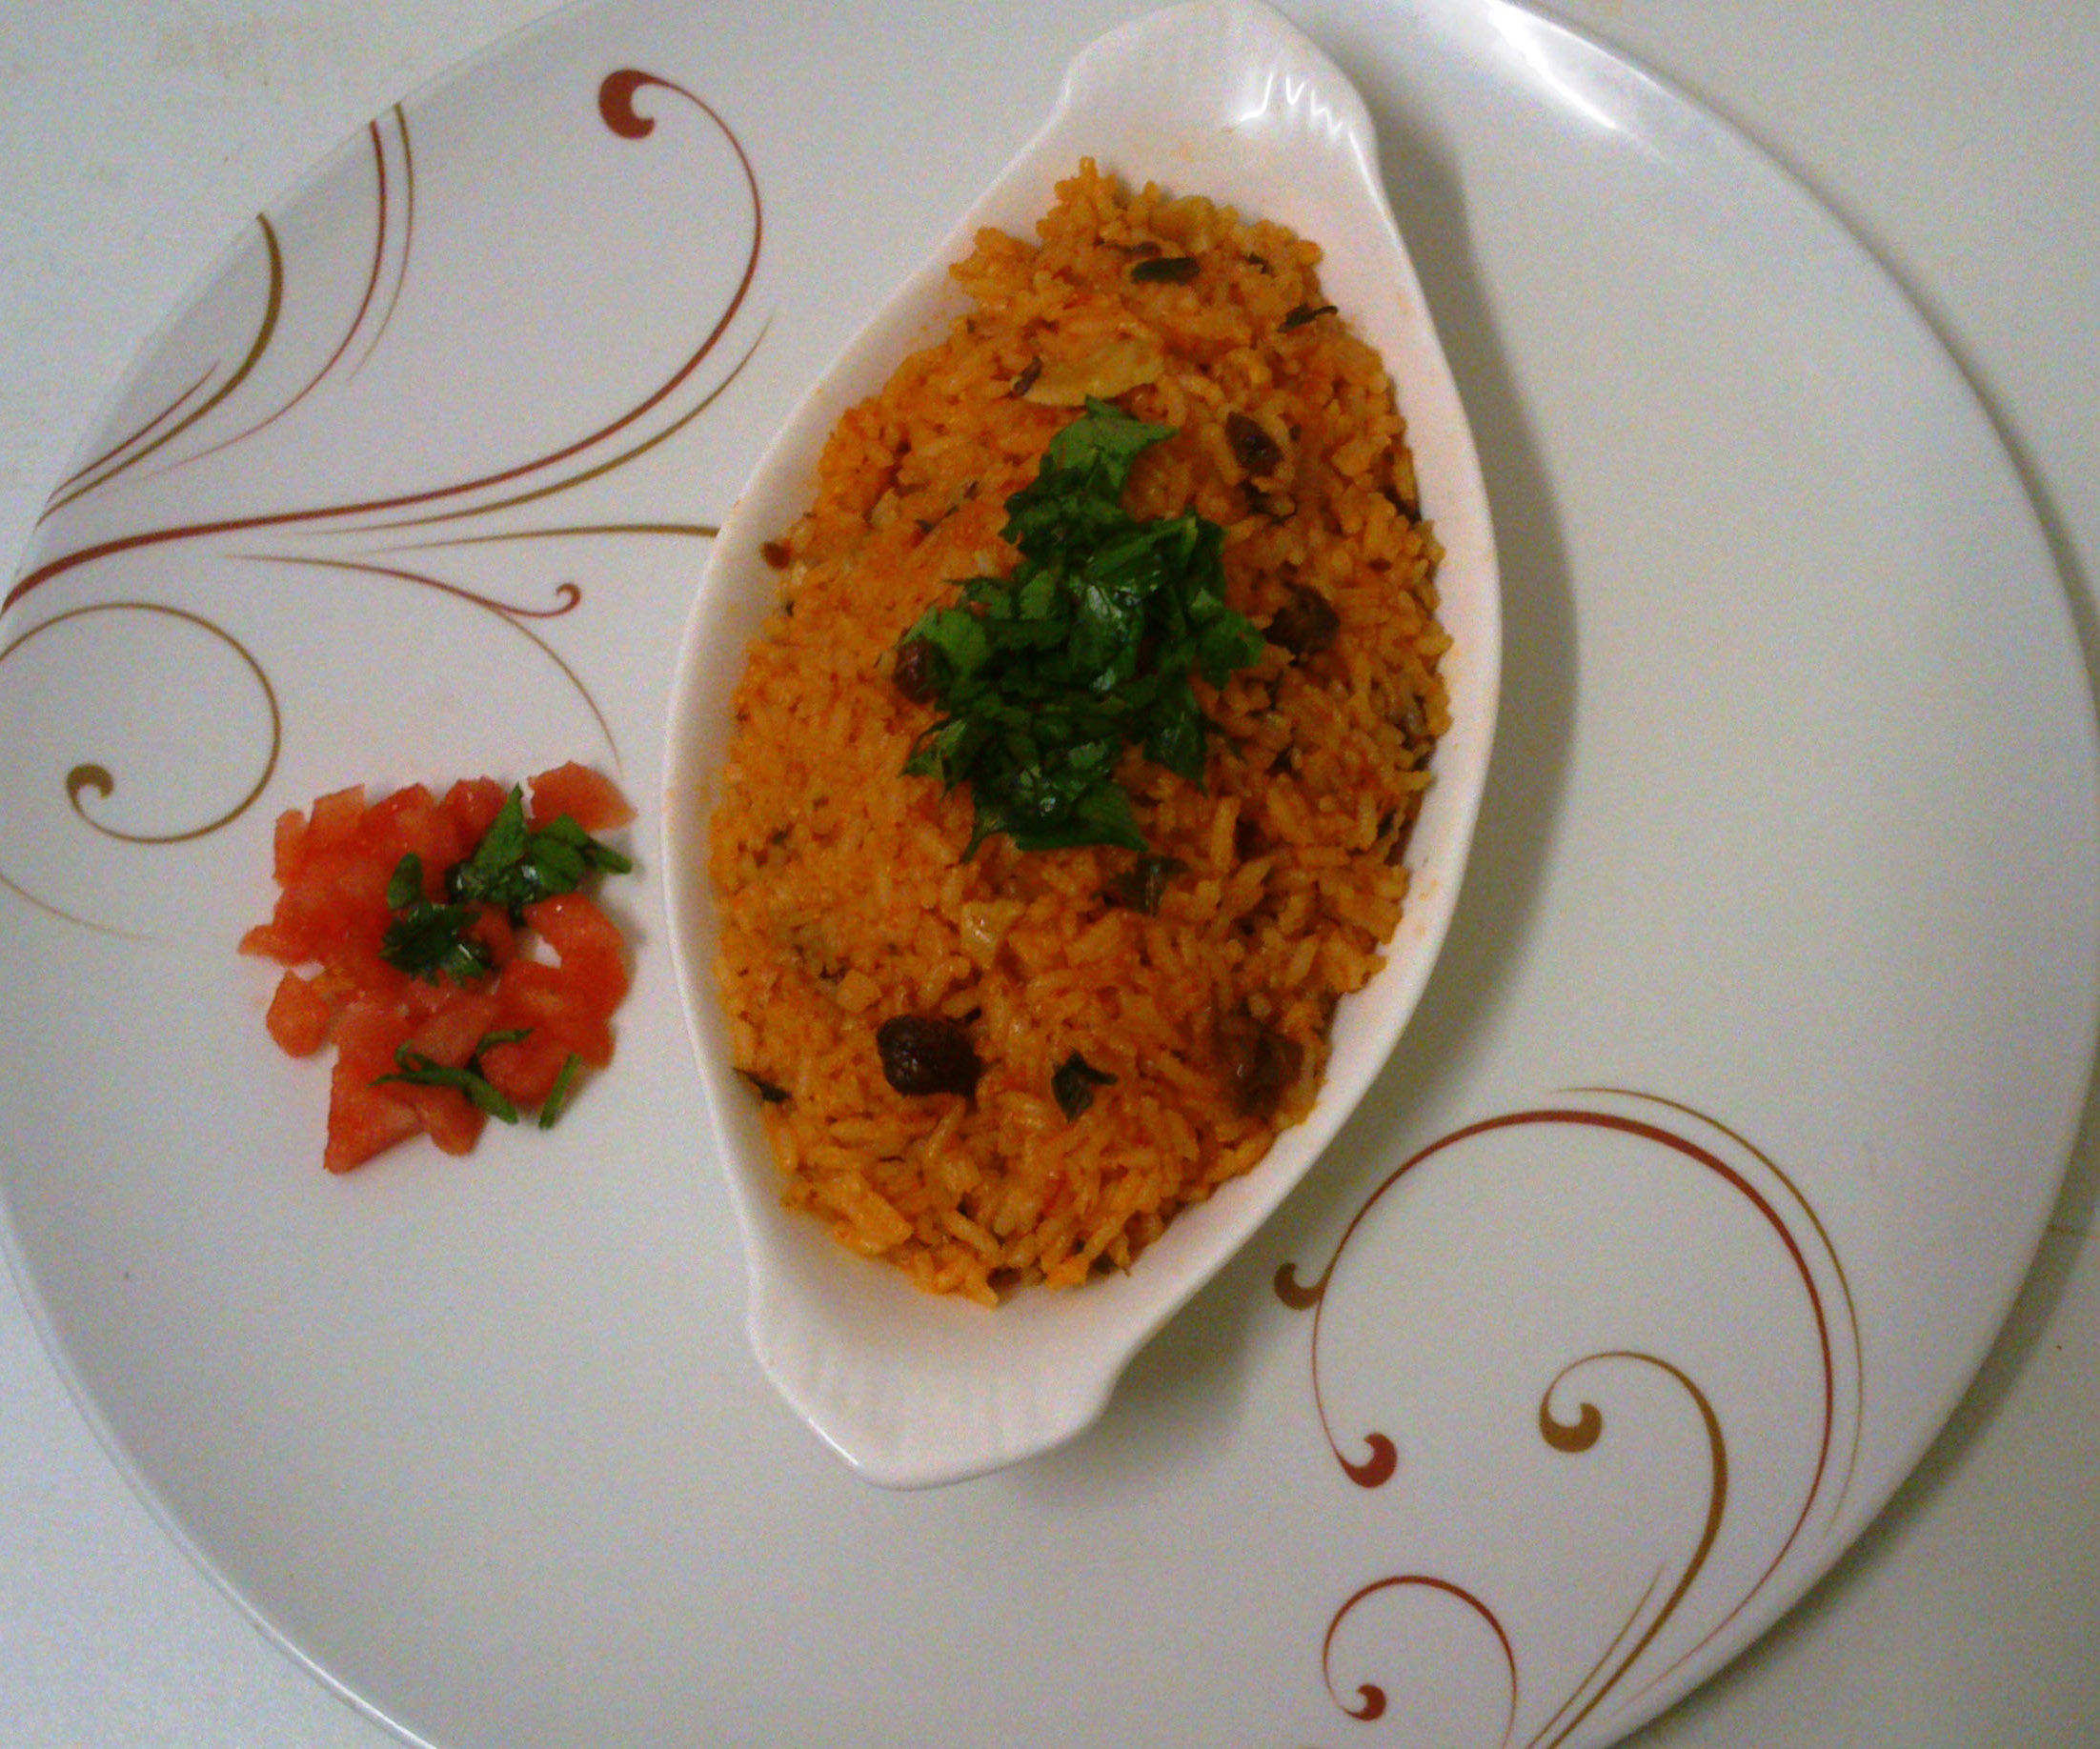 Melon chevril rice